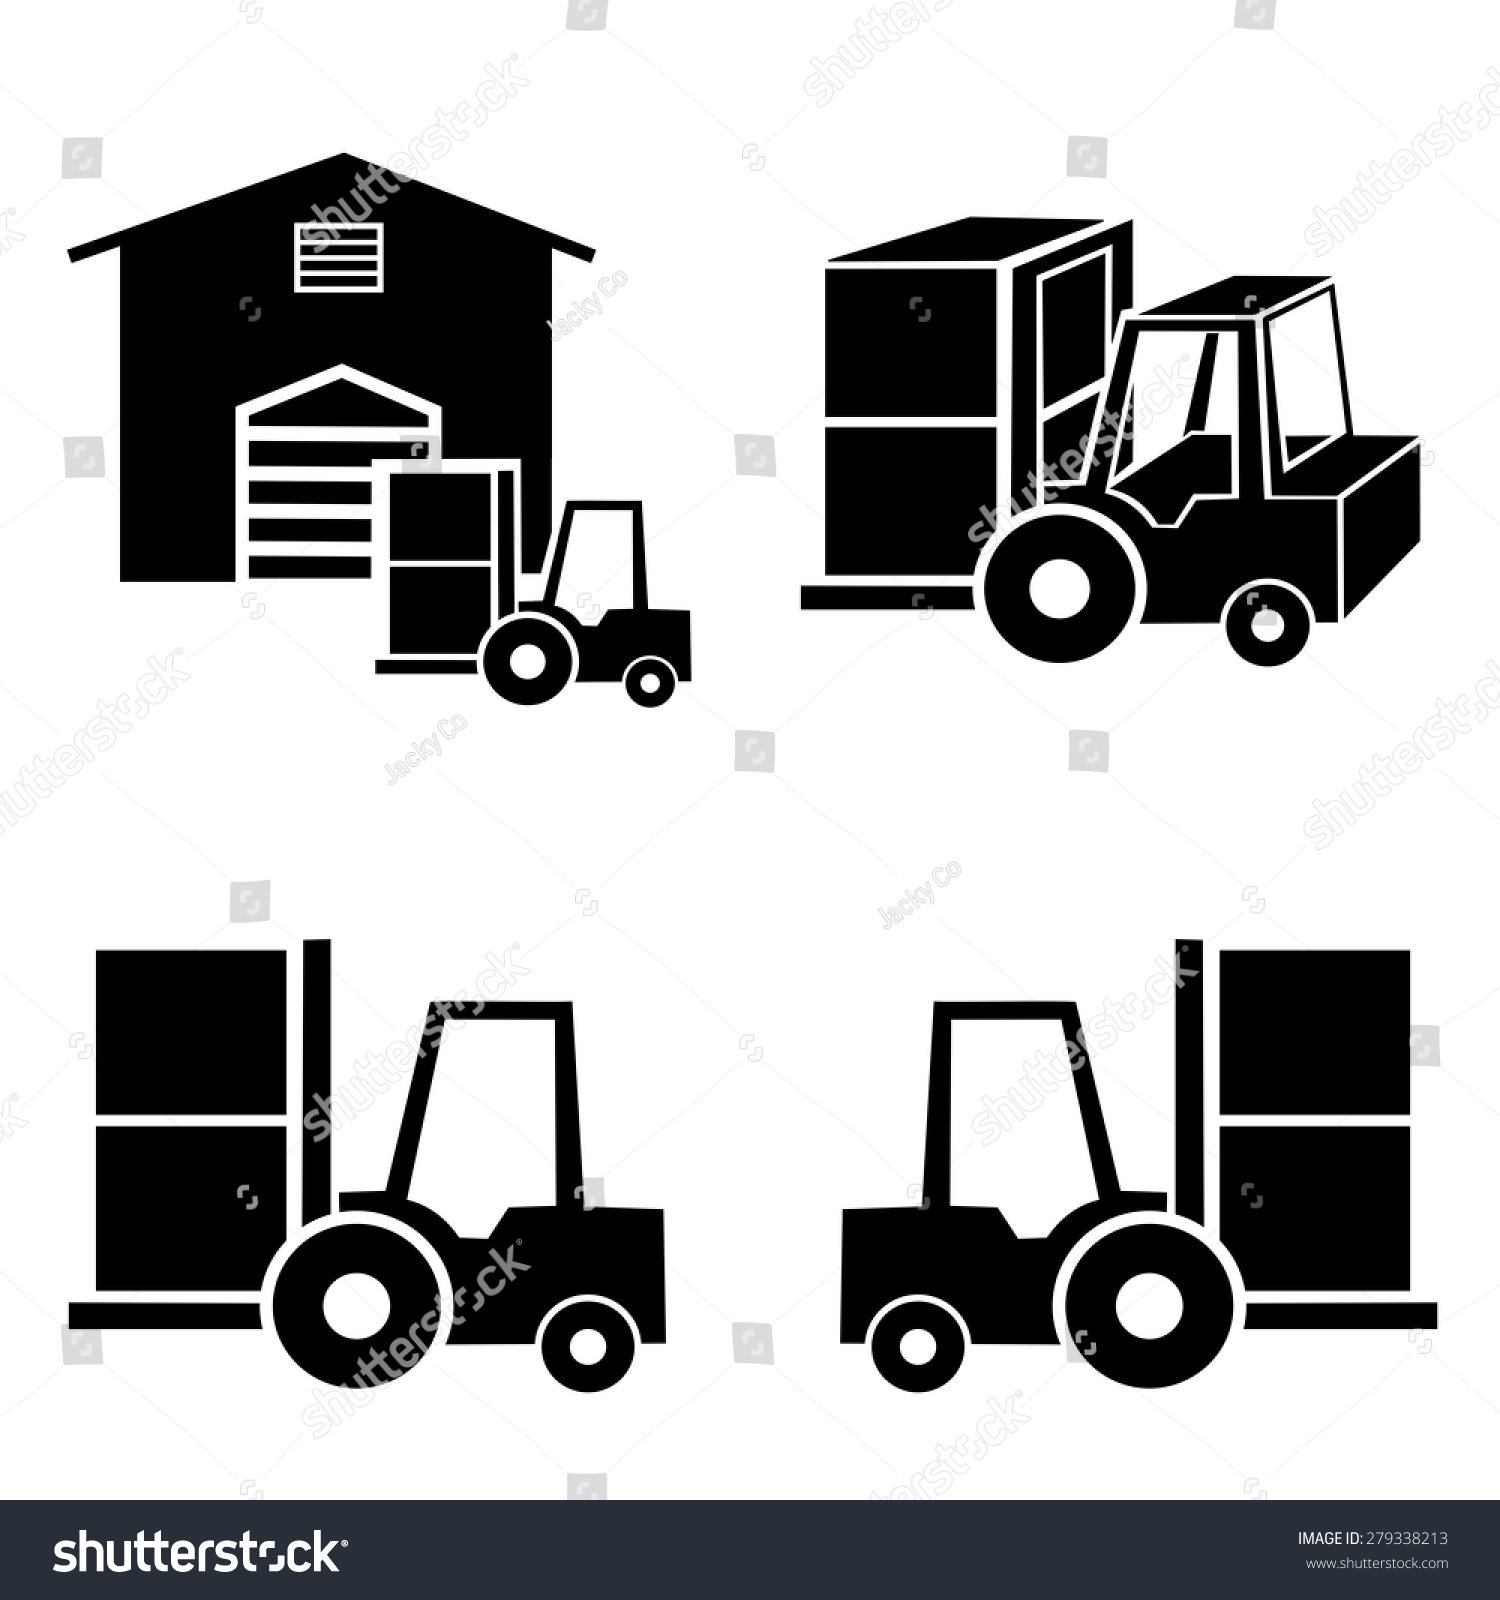 delivery truck icon vector - photo #36